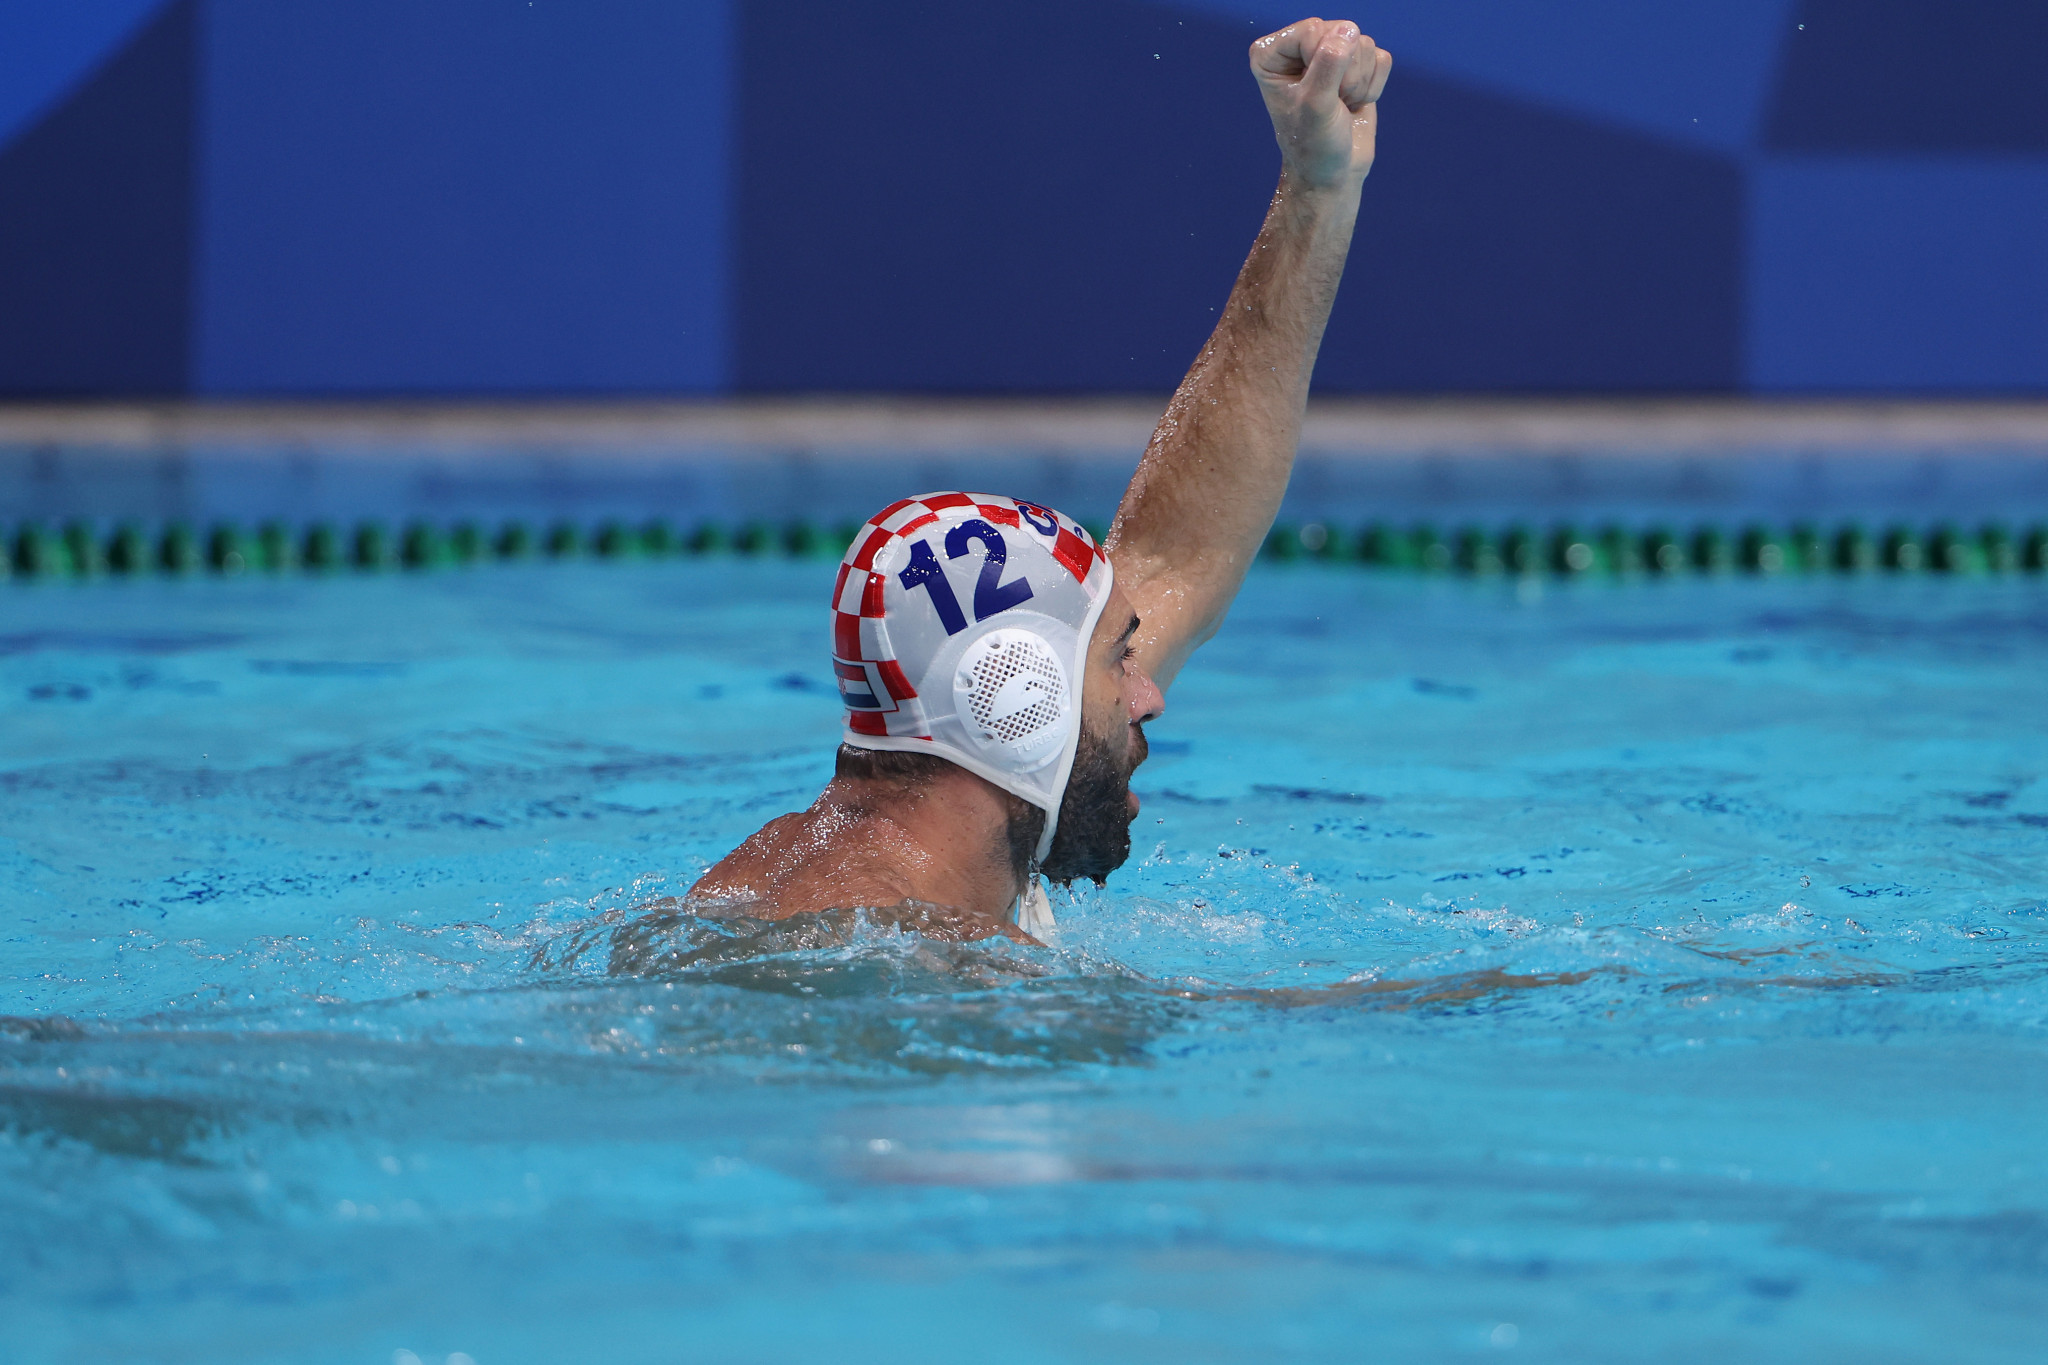 Group stages reach finale in FINA World Men's Junior Water Polo Championships 2021